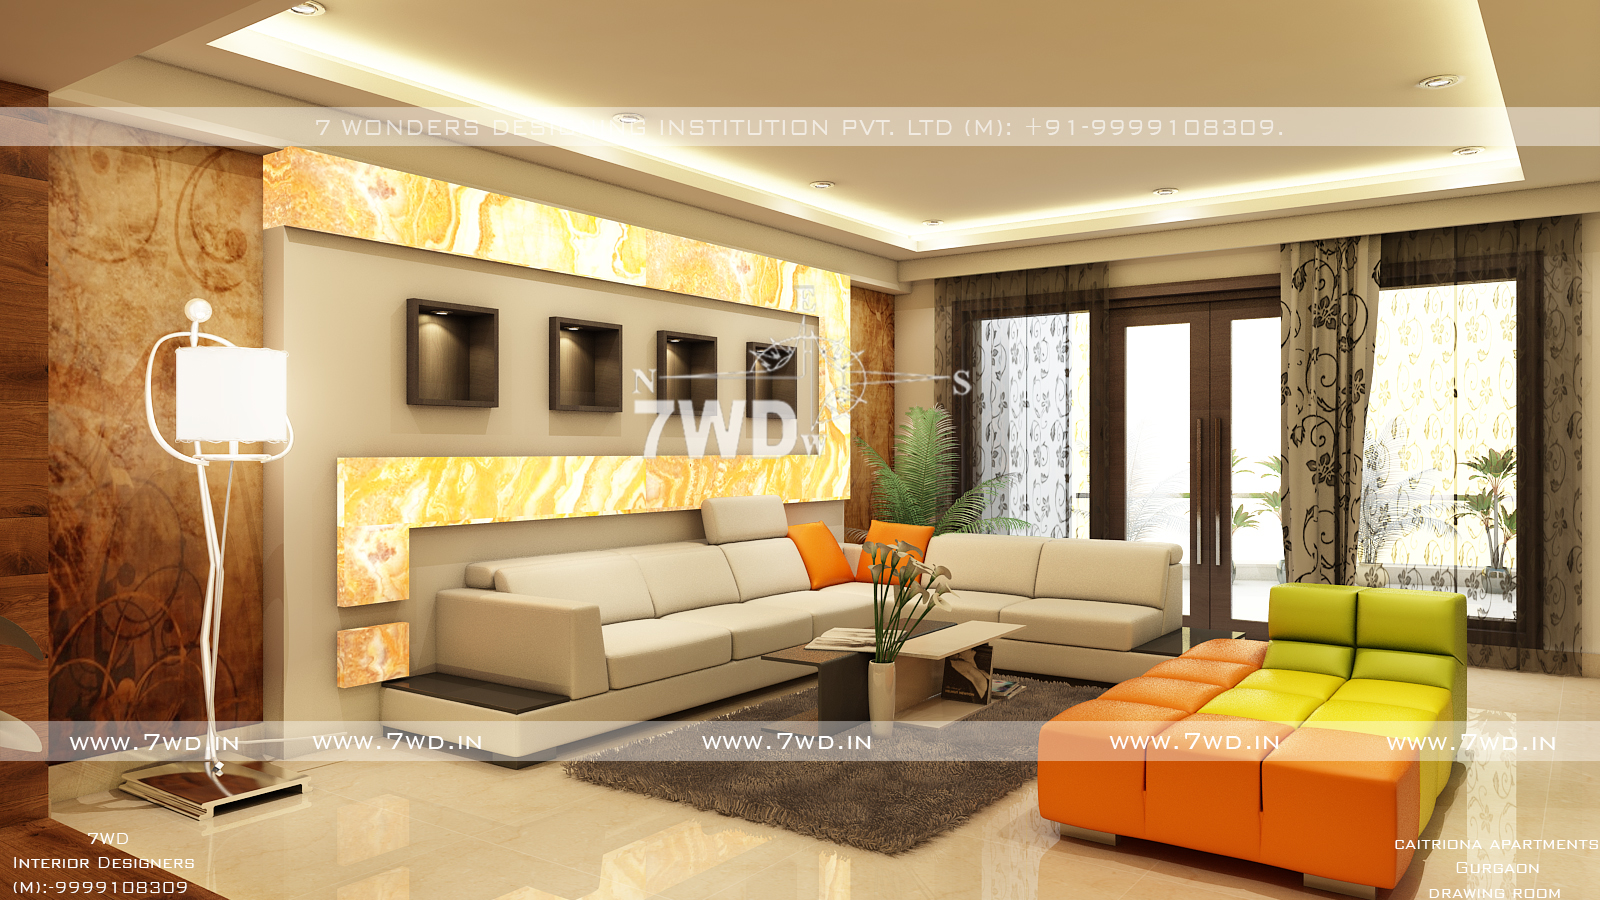 Interior Designers In Delhi NCR , India